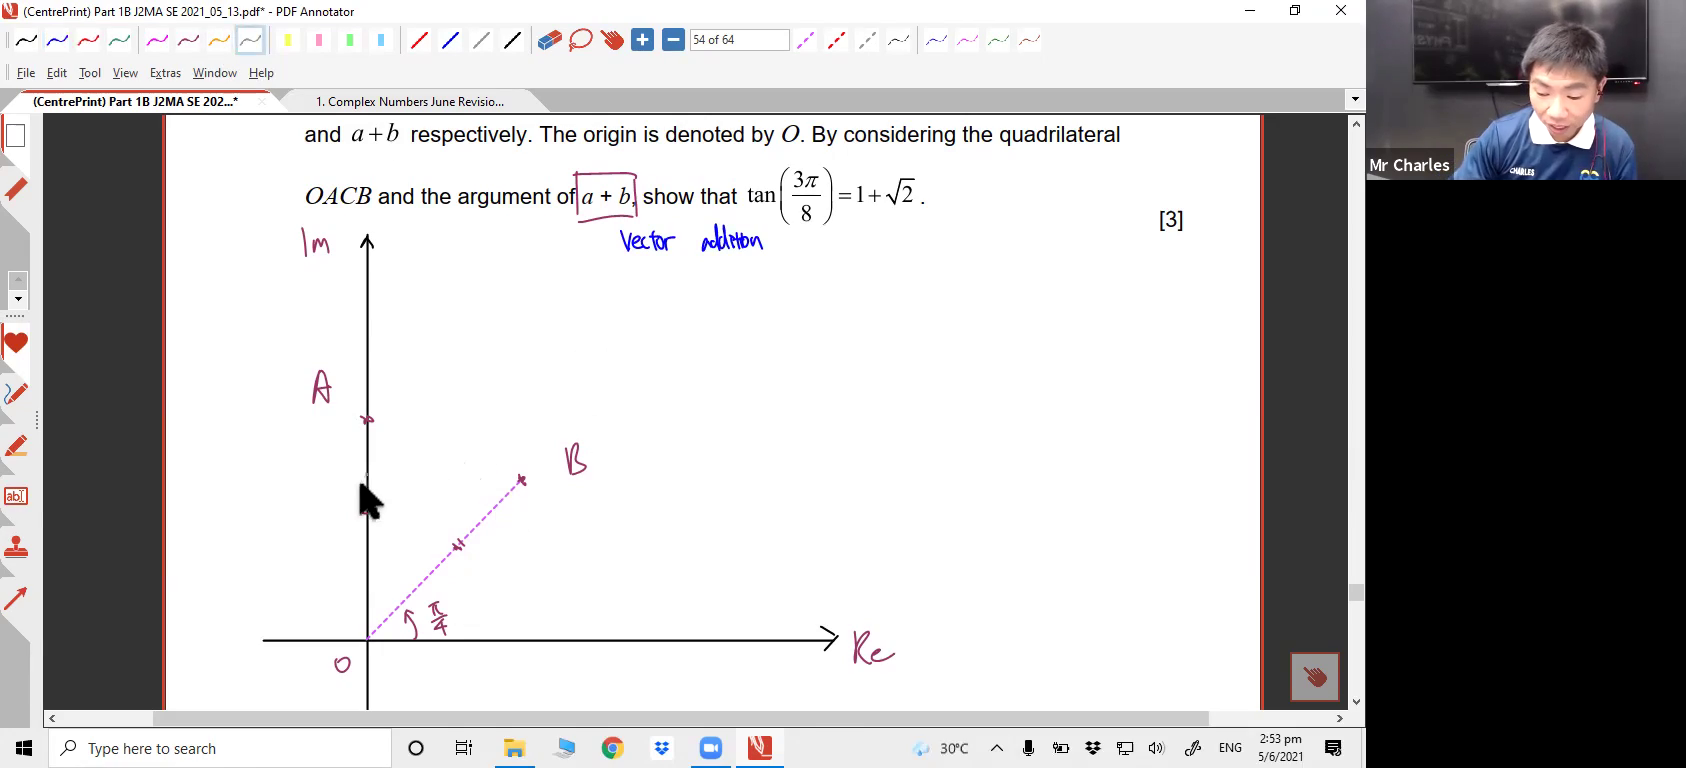 [COMPLEX NUMBERS] Polar Form